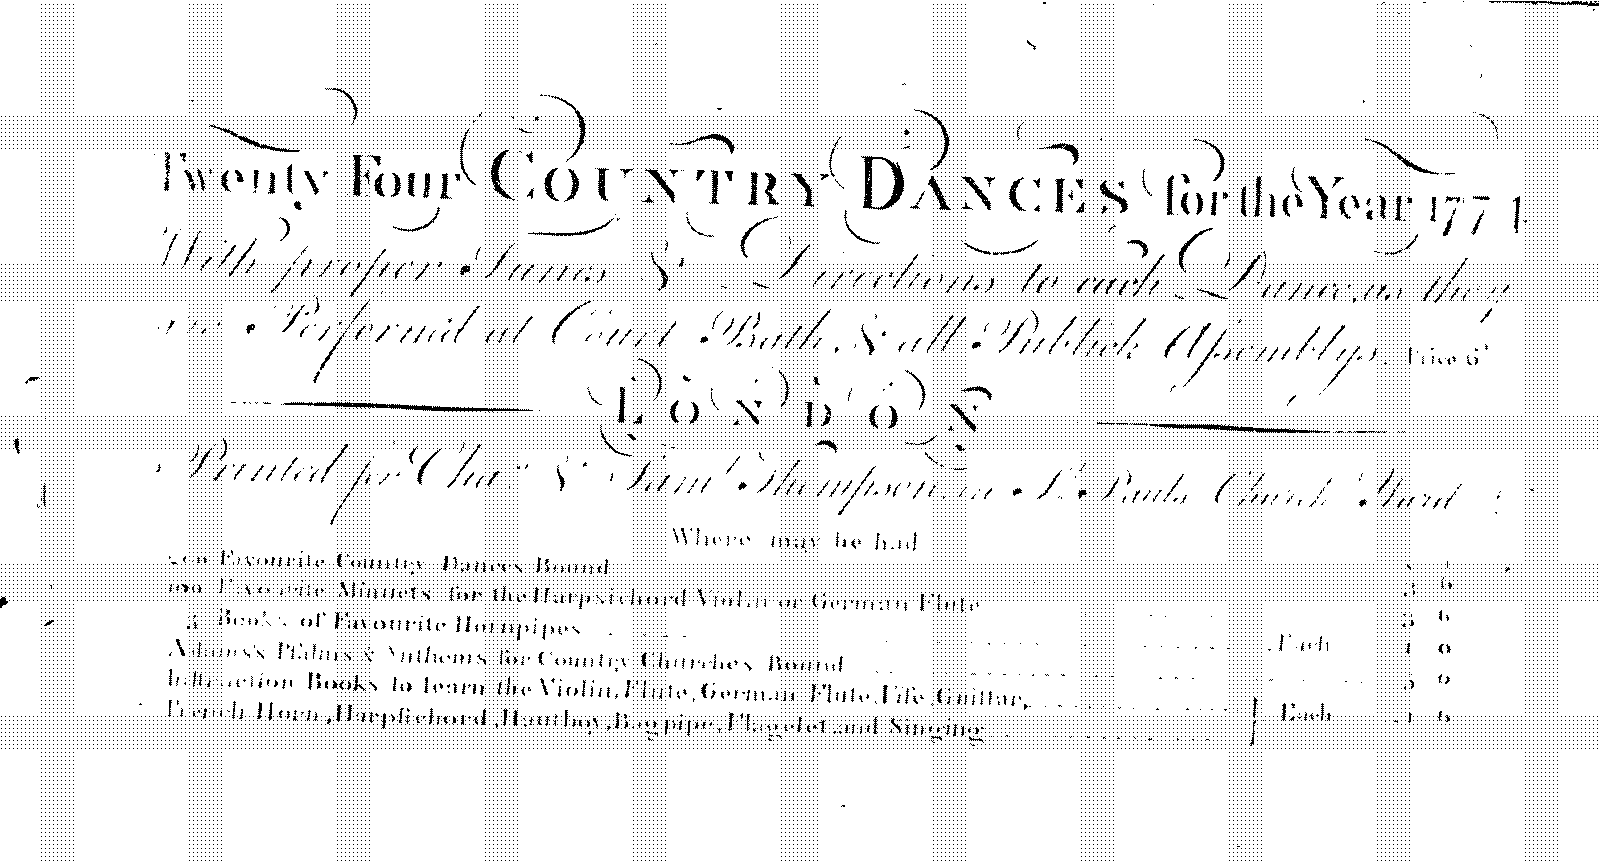 PMLP90890-Thompson 24 dances 1774.pdf